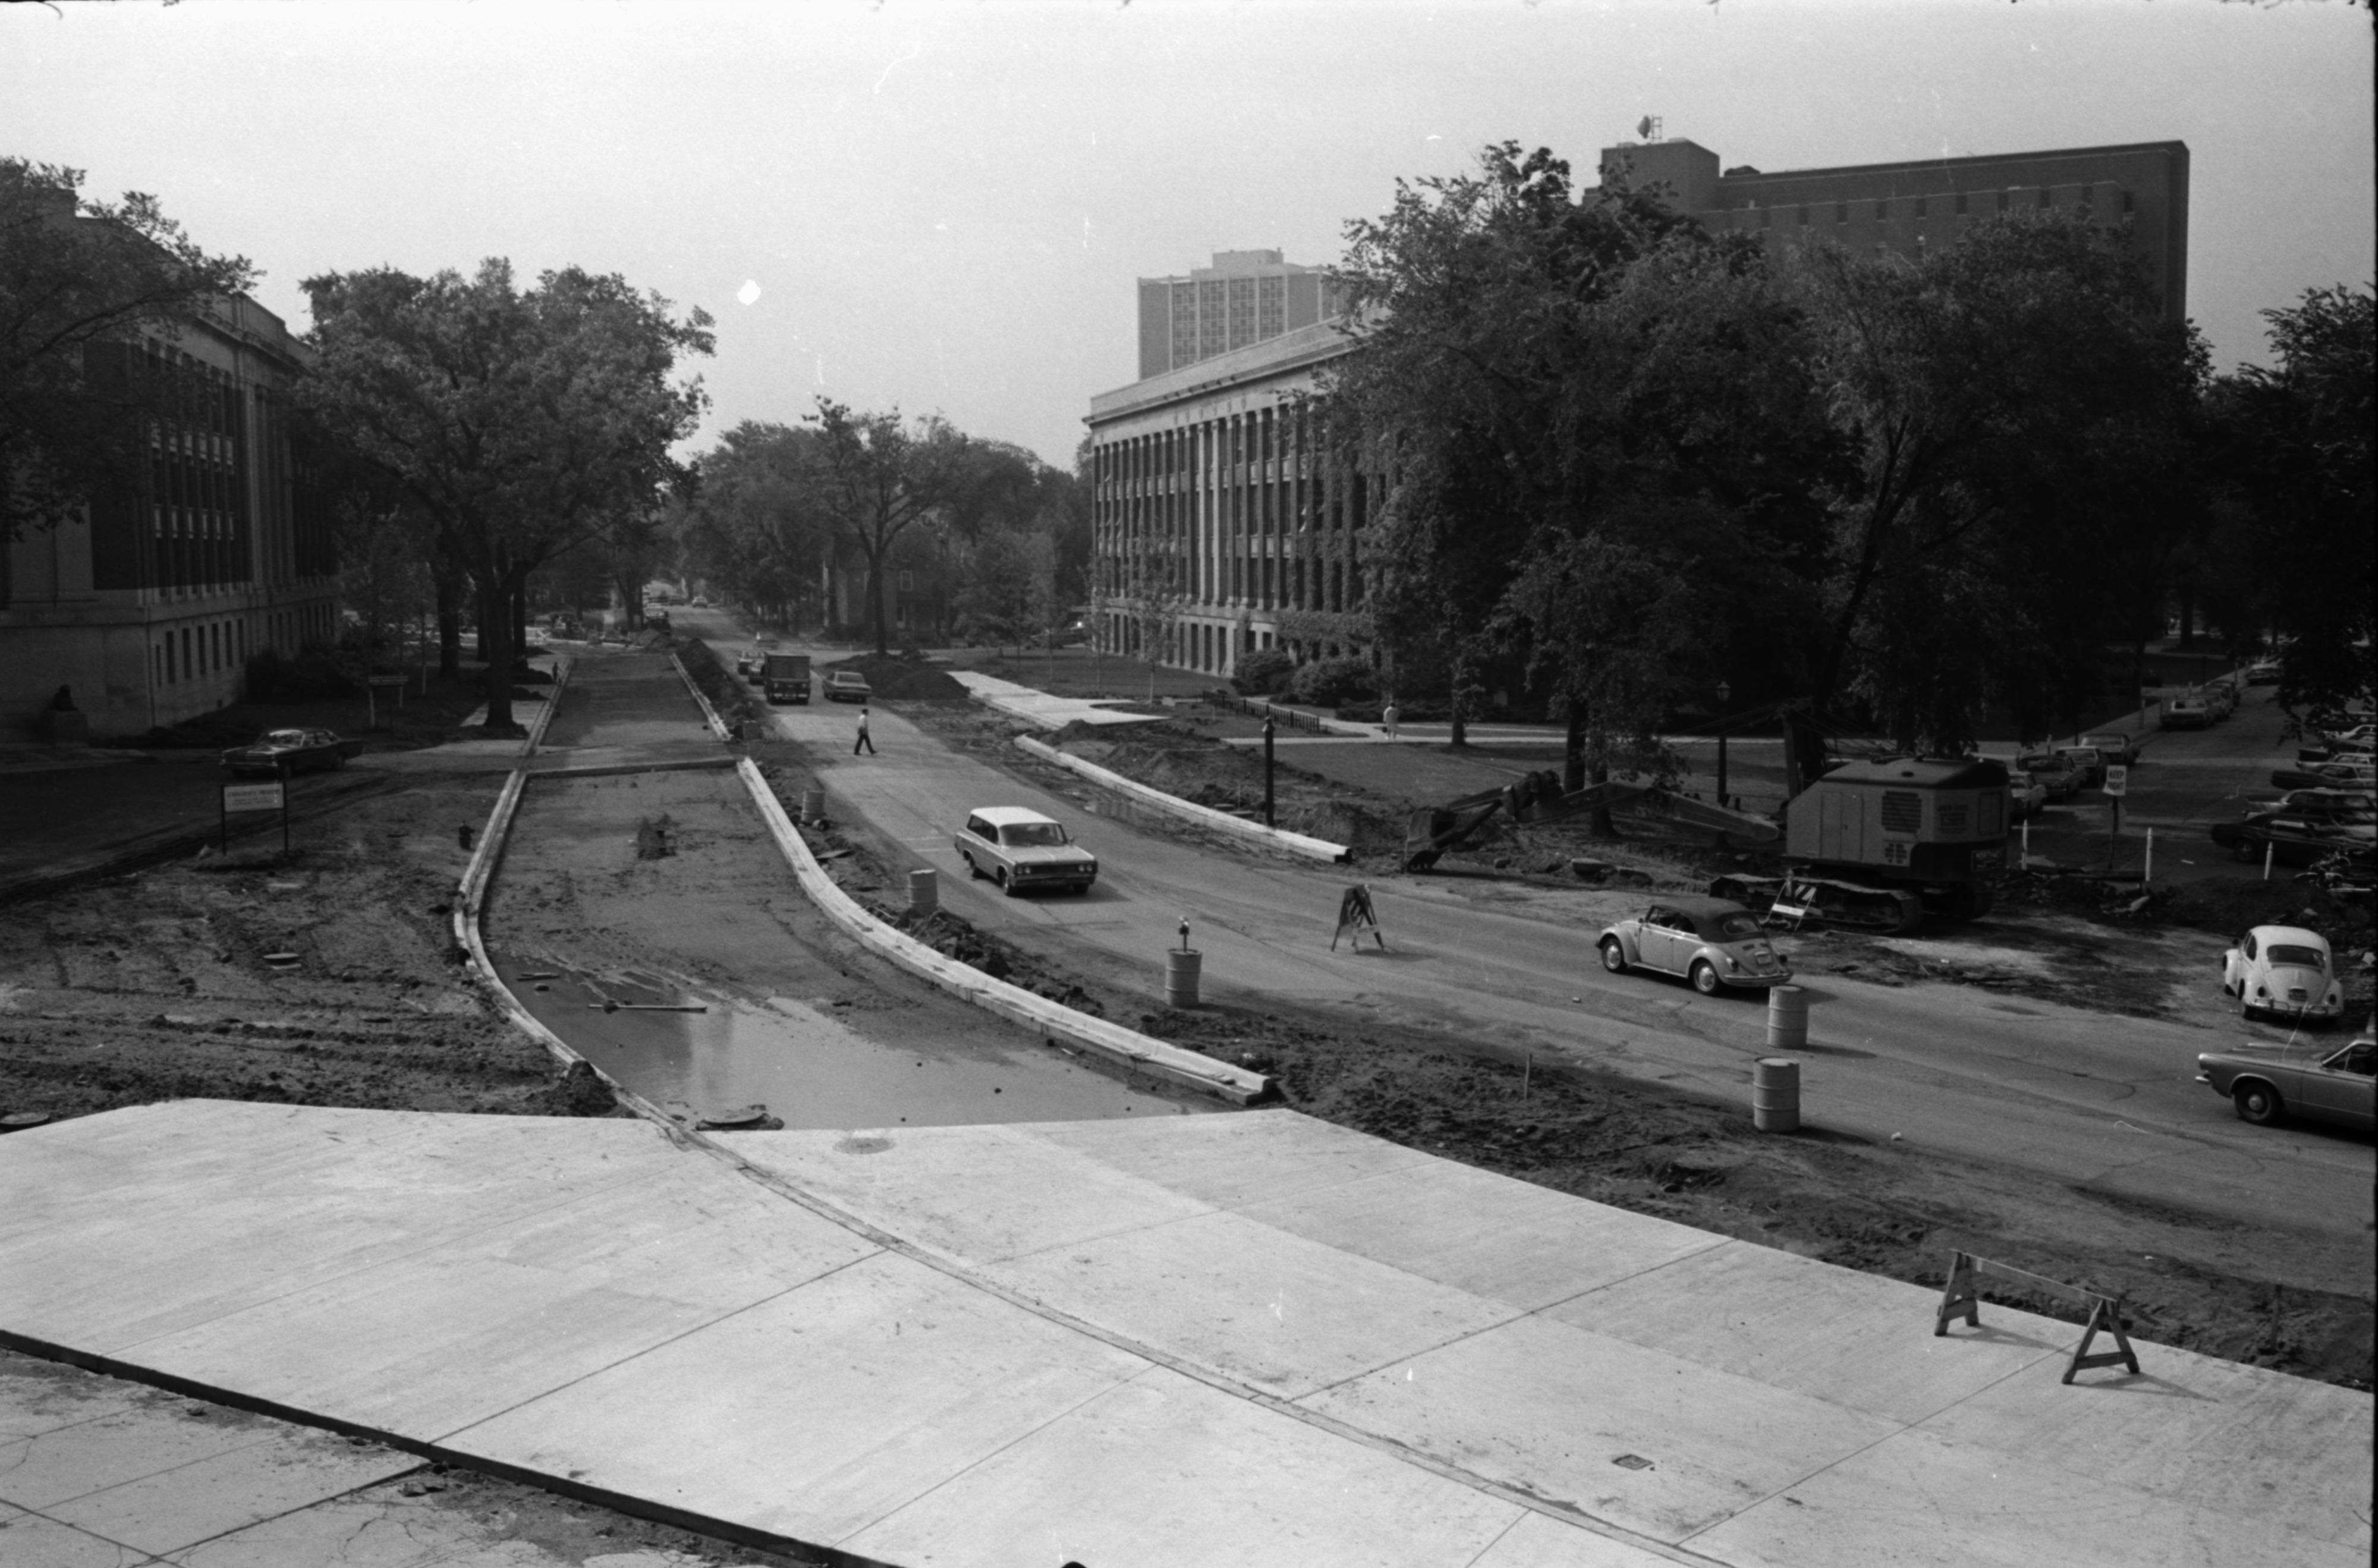 North University Avenue Is Widened, June 1969 image